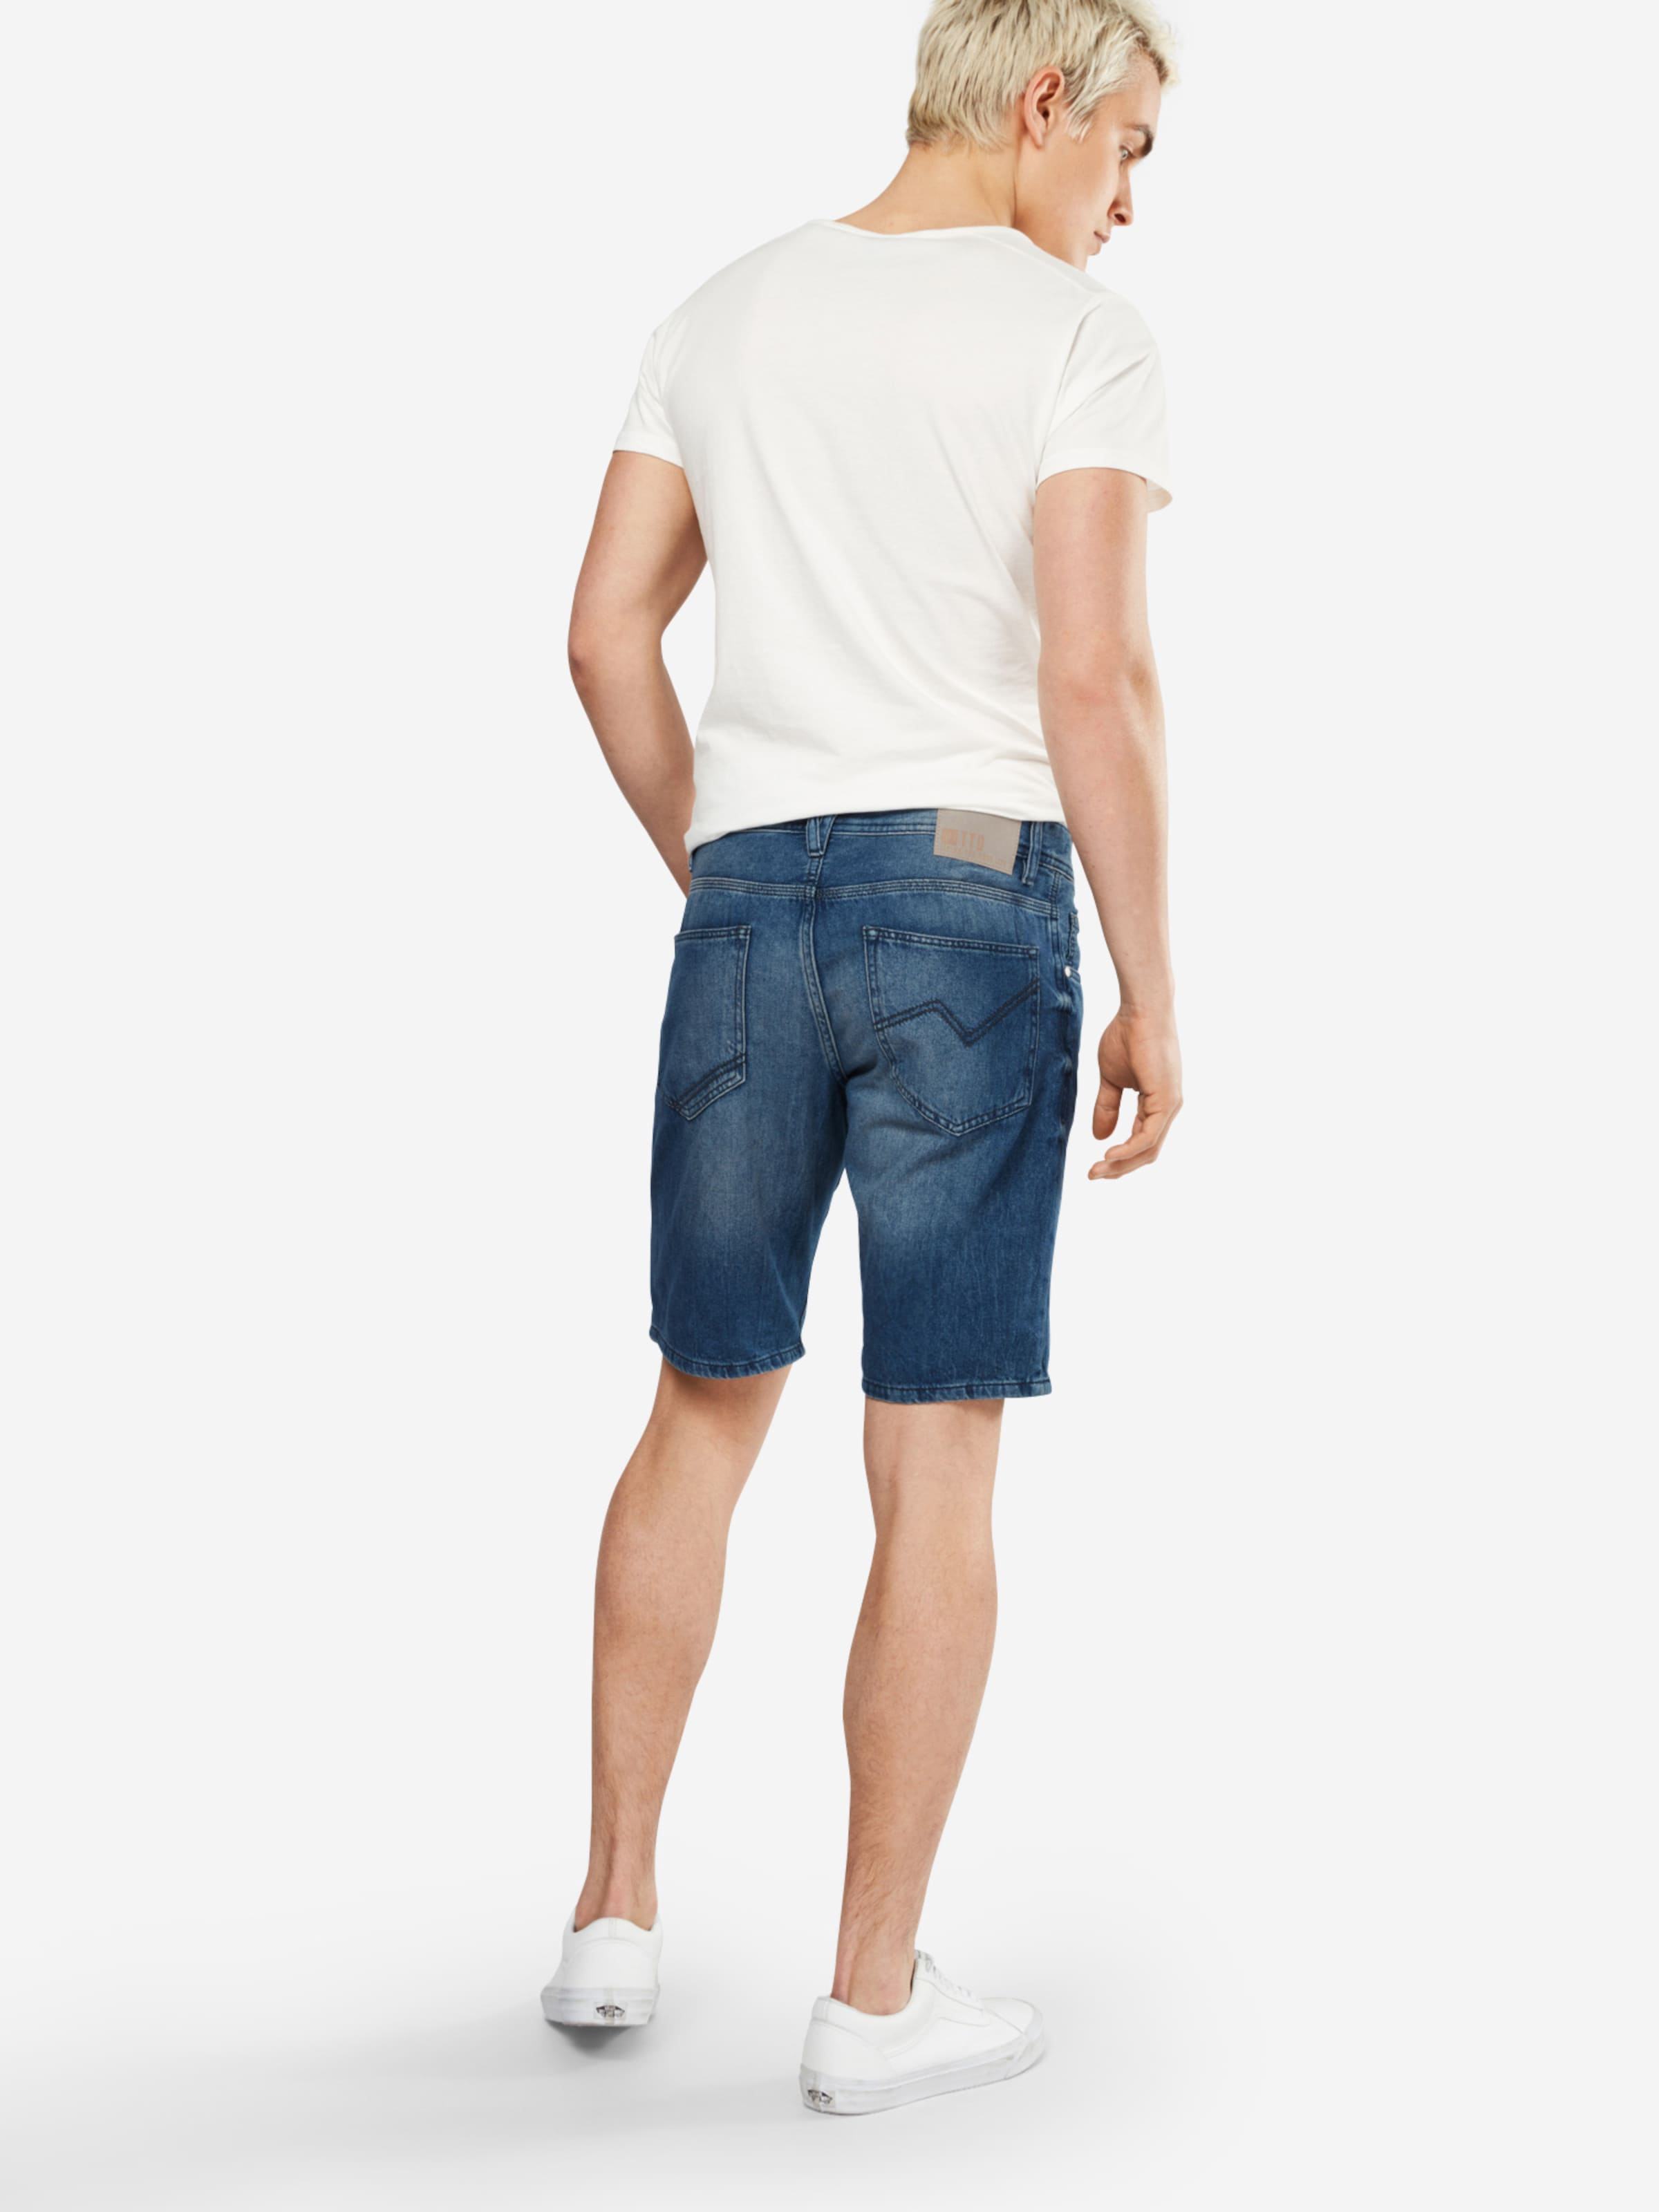 TOM TAILOR DENIM Regular Fit Denim Shorts Auslass Niedriger Versand 7xohqpZ9